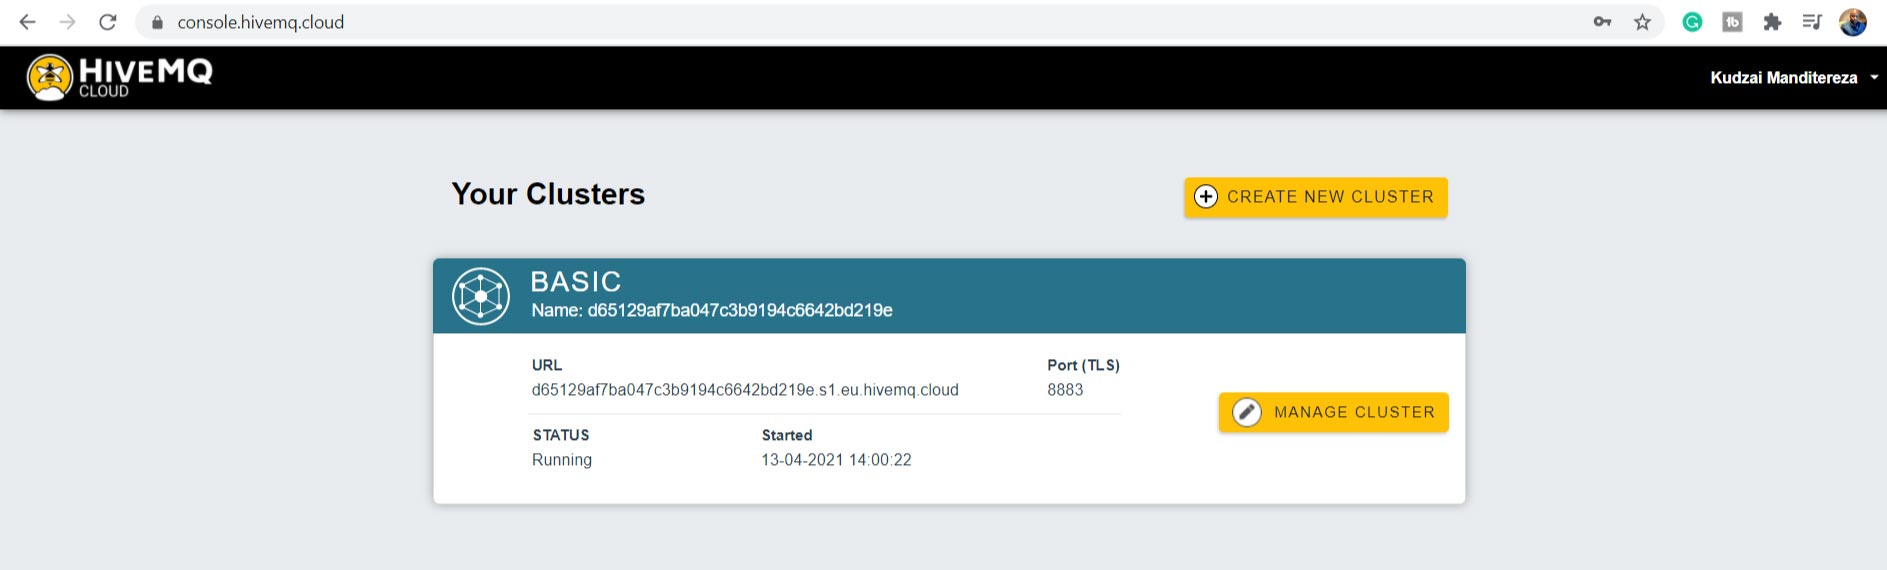 HiveMQ Cloud Your Clusters